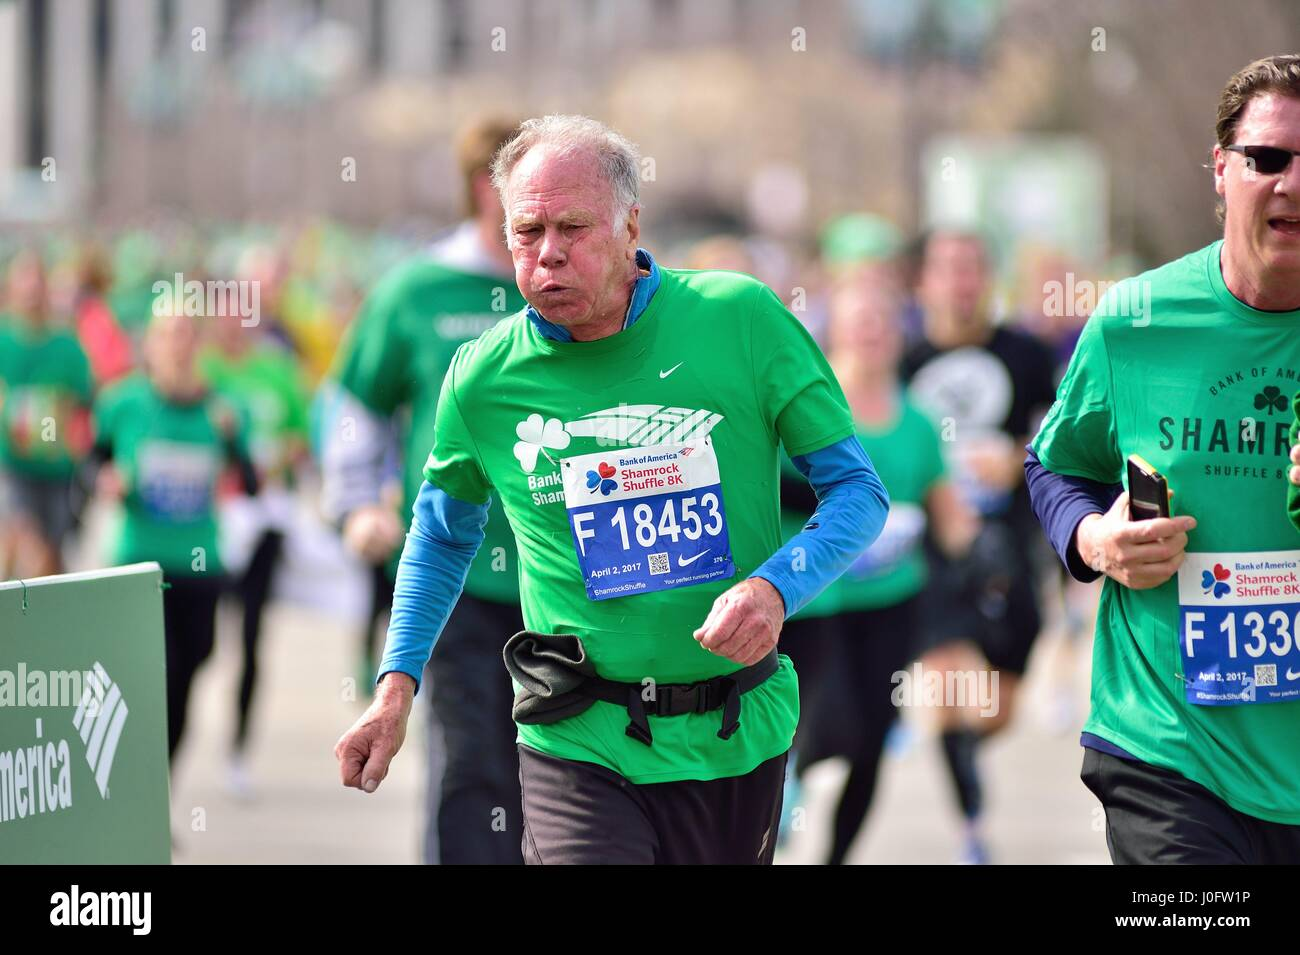 Fatigued runner straining prior to crossing the finish line at the 2017 Shamrock Shuffle race in Chicago, Illinois, - Stock Image